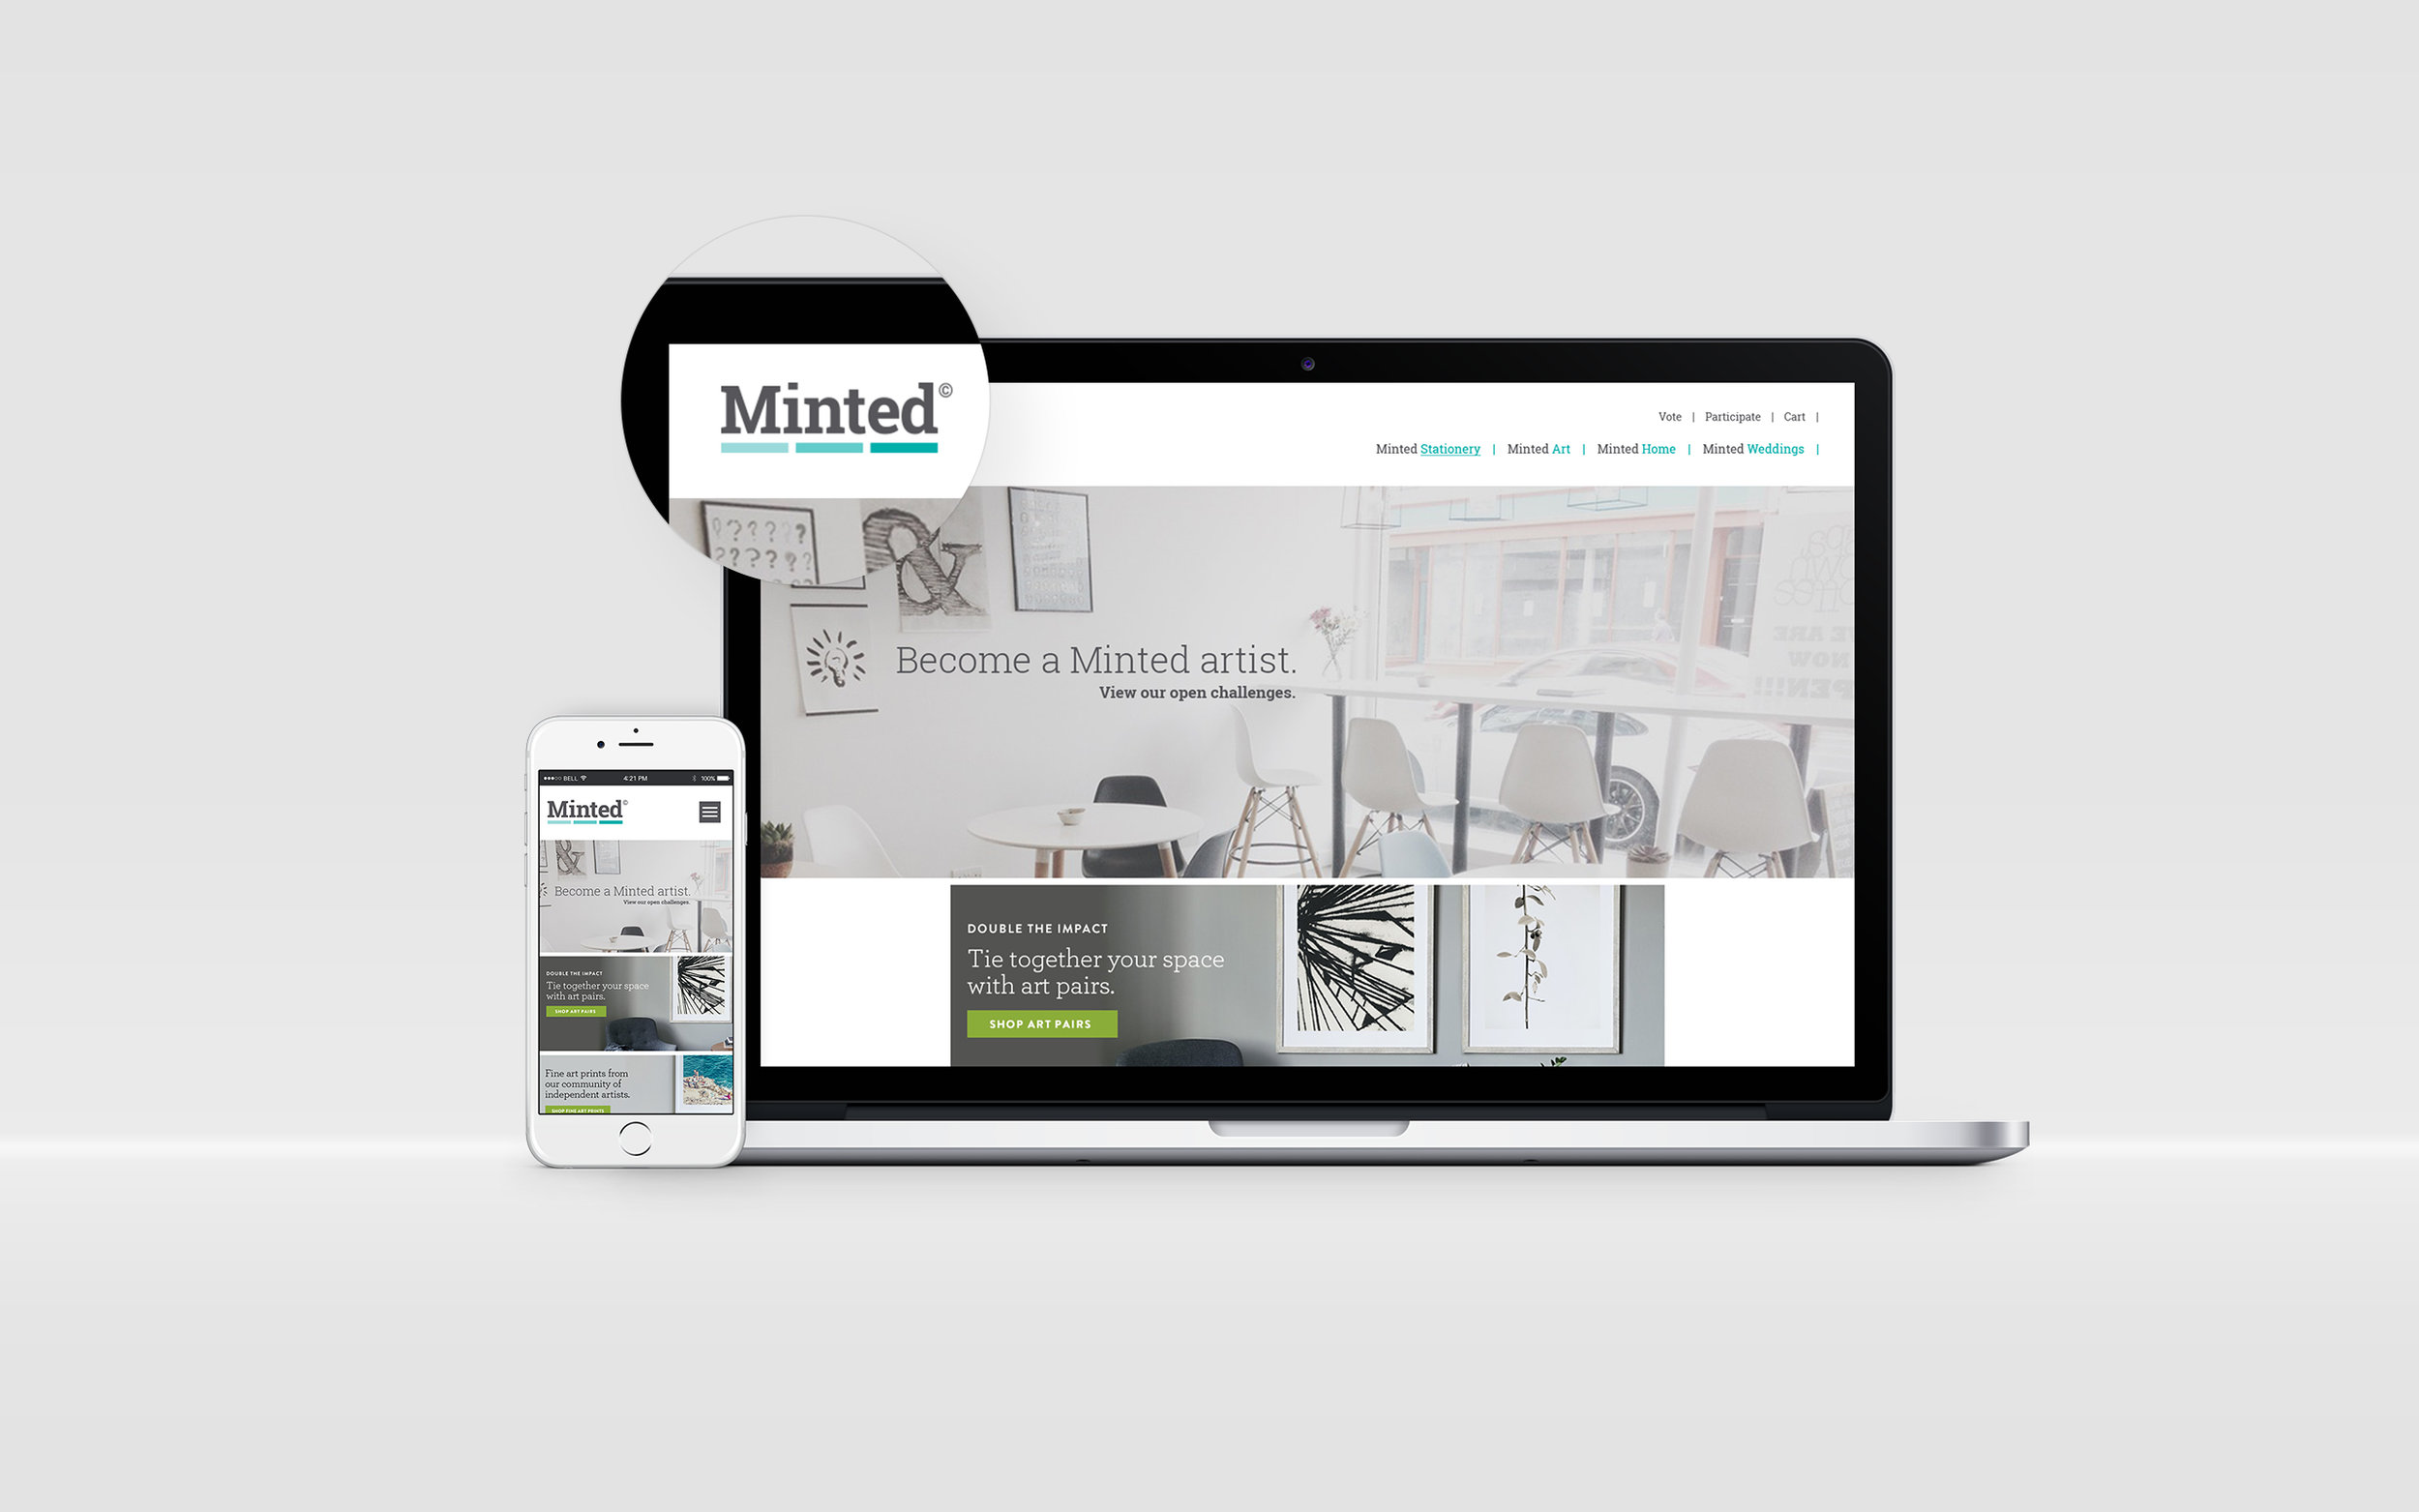 Minted_Showcase-Devices-Presentation.jpg